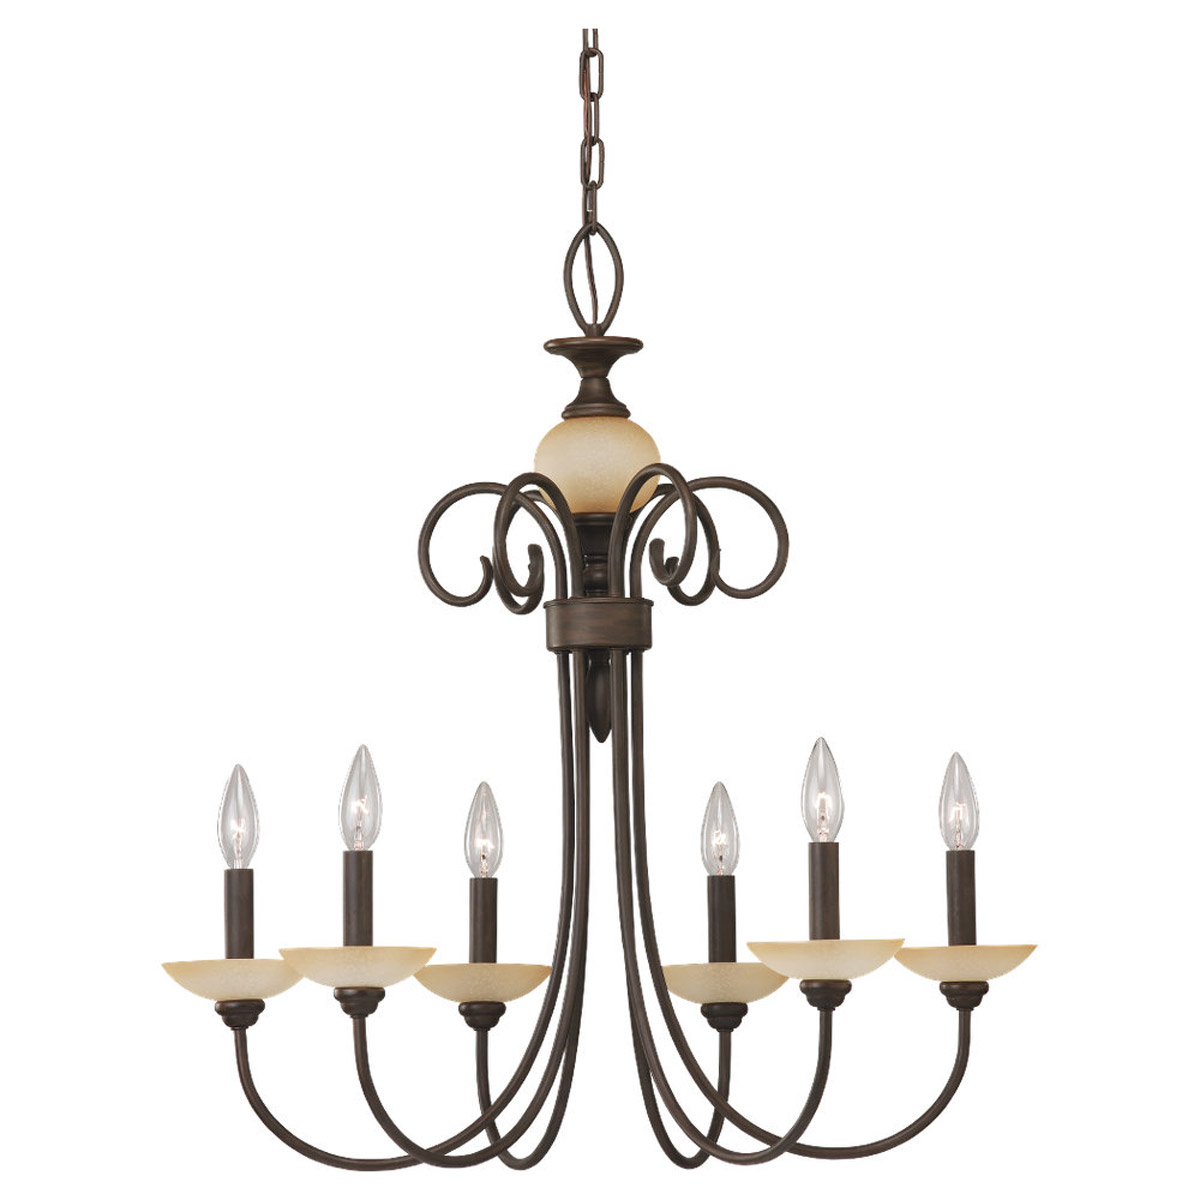 Sea Gull Lighting Montclaire 6 Light Chandelier in Olde Iron 31107-72